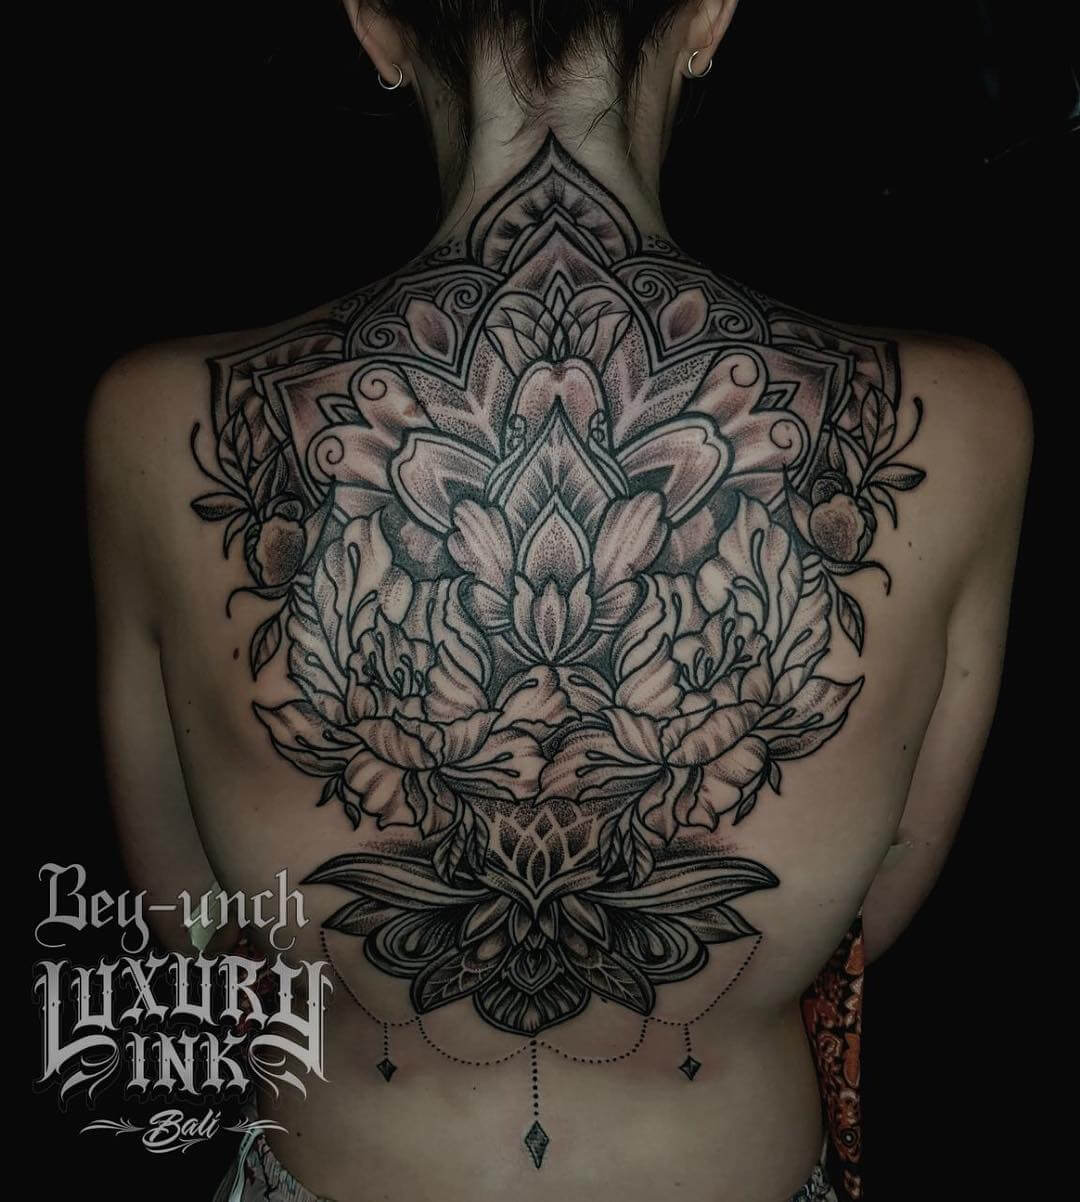 Luxury Ink Bali Tattoo Gallery Blackwork style112